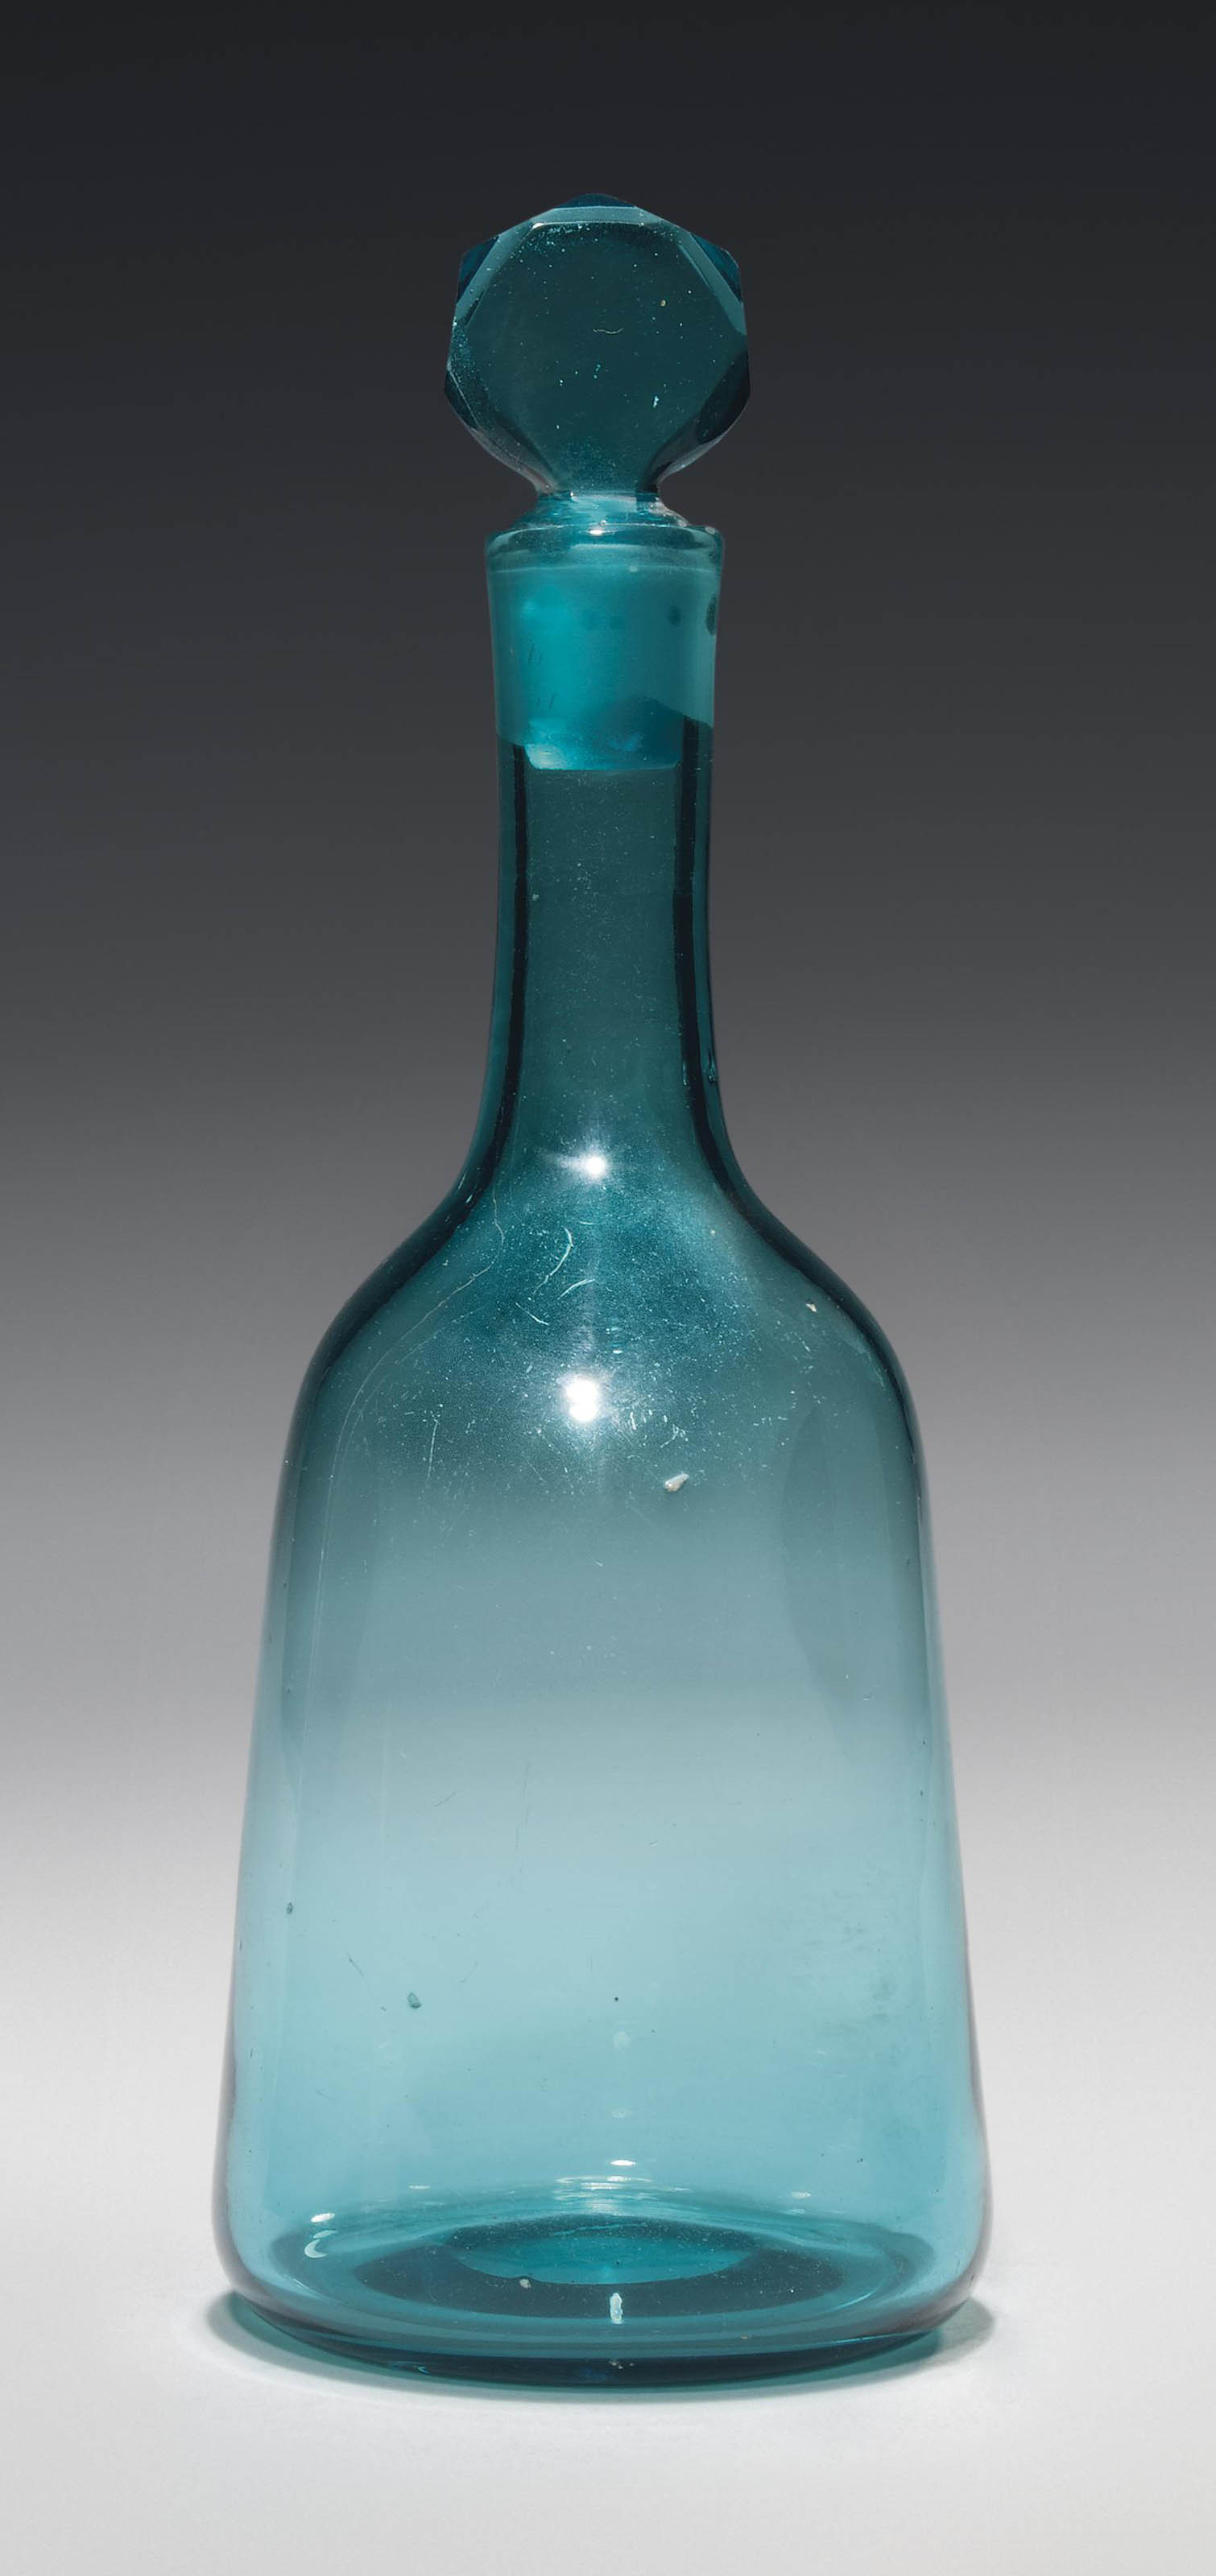 A PALE-GREEN-GLASS SPIRIT-DECANTER AND STOPPER